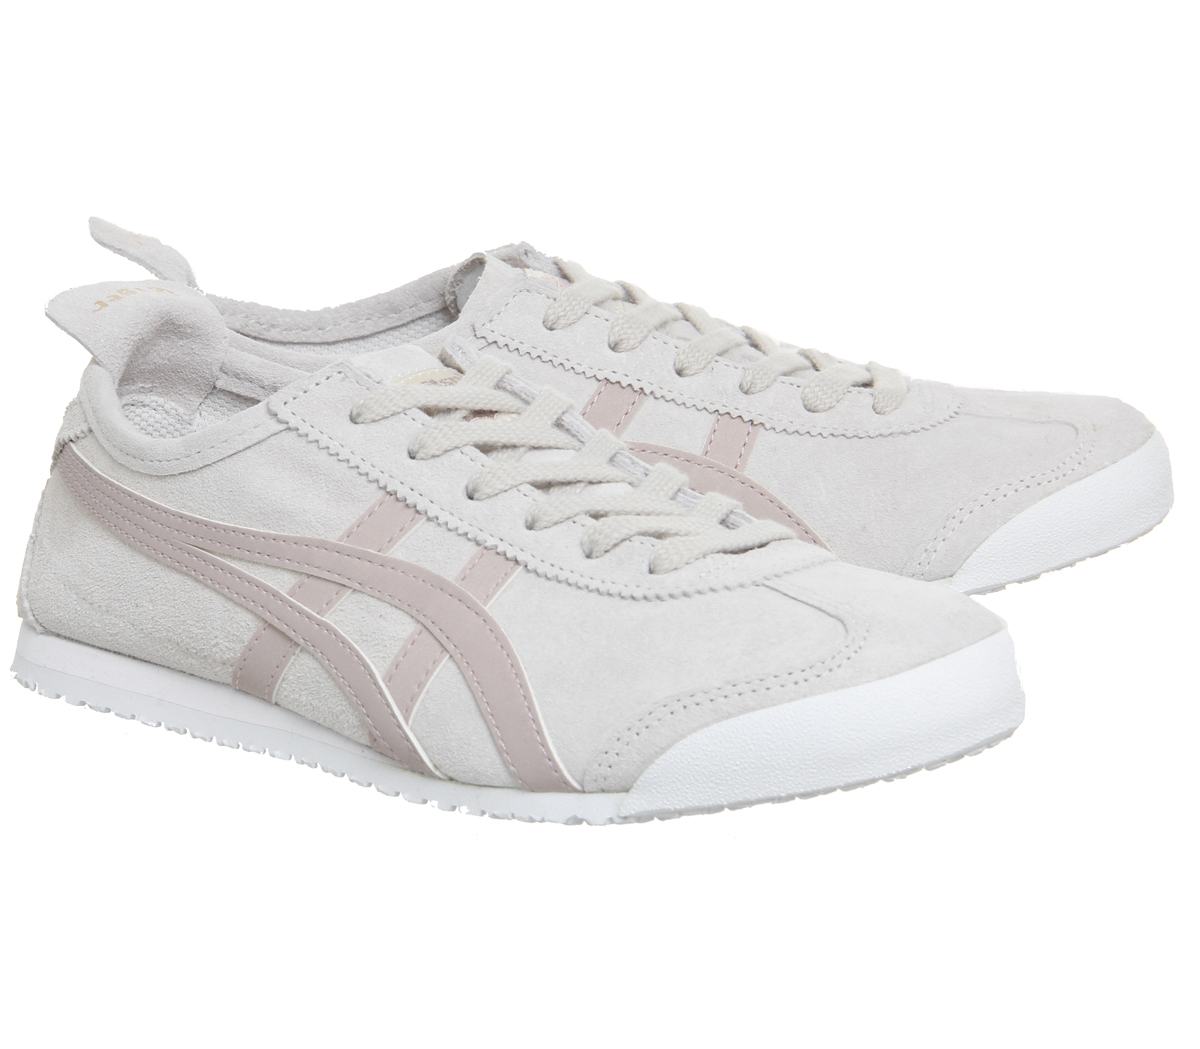 Damenschuhe Onitsuka Tiger Mexico CLOUD 66 Trainers BIRCH CORAL CLOUD Mexico EXCLUSIVE Trainers Sh 3d4521